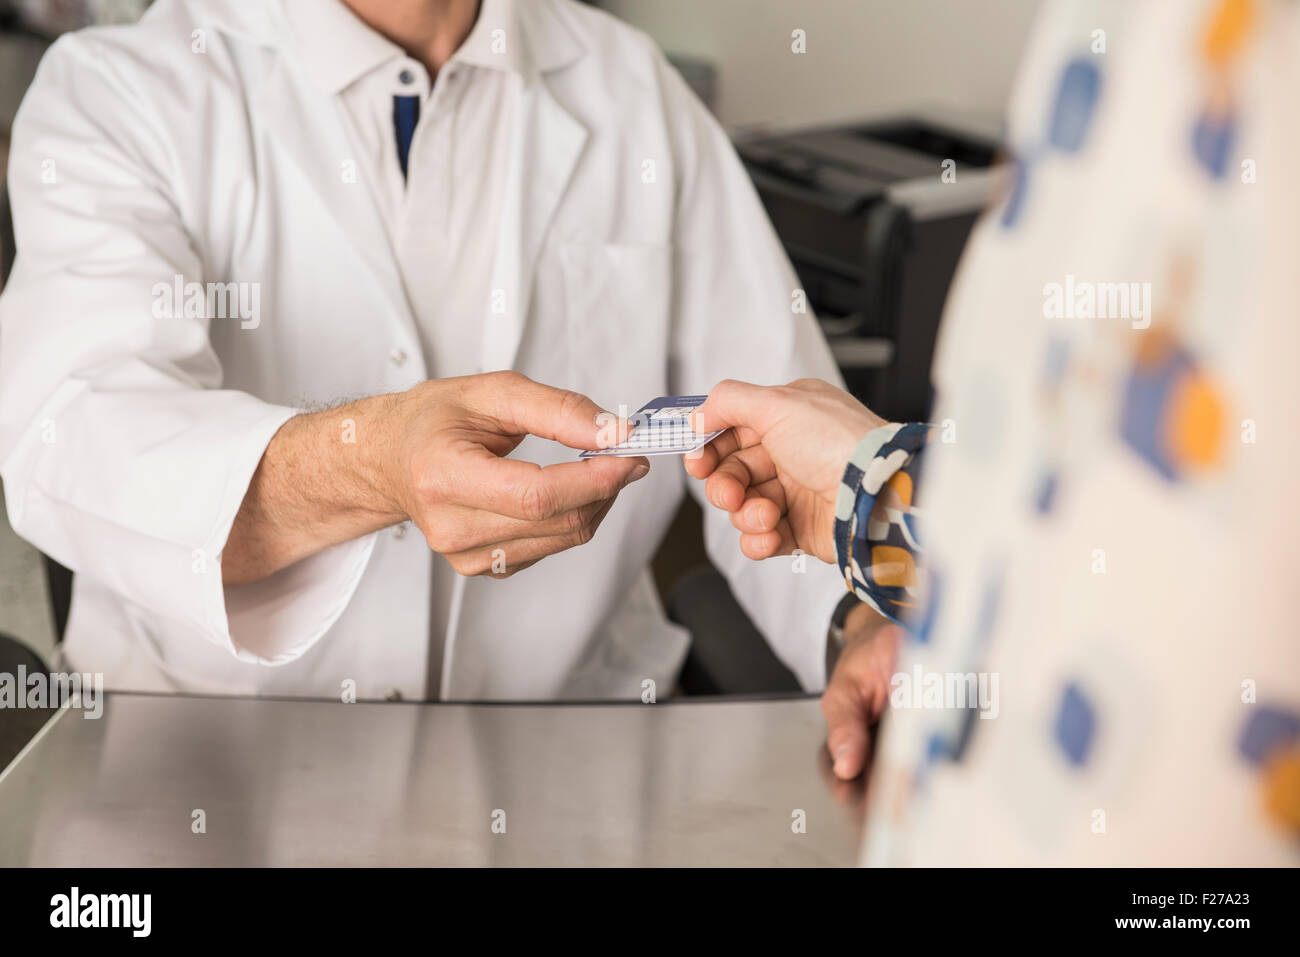 Patient giving a health insurance card to doctor, Munich, Bavaria, Germany - Stock Image